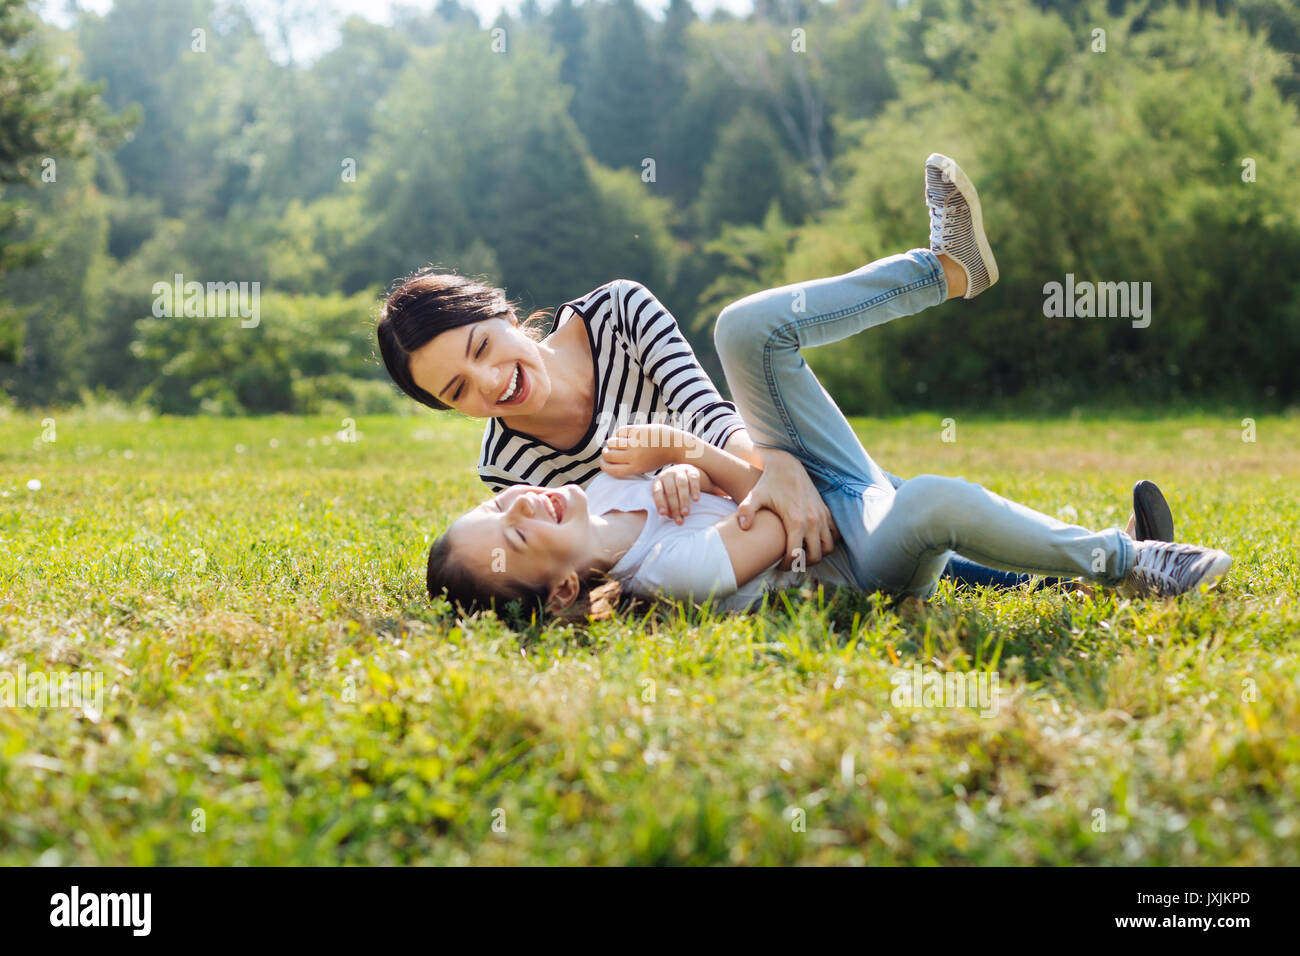 Cheerful mother and daughter goofing around on grass in park - Stock Image